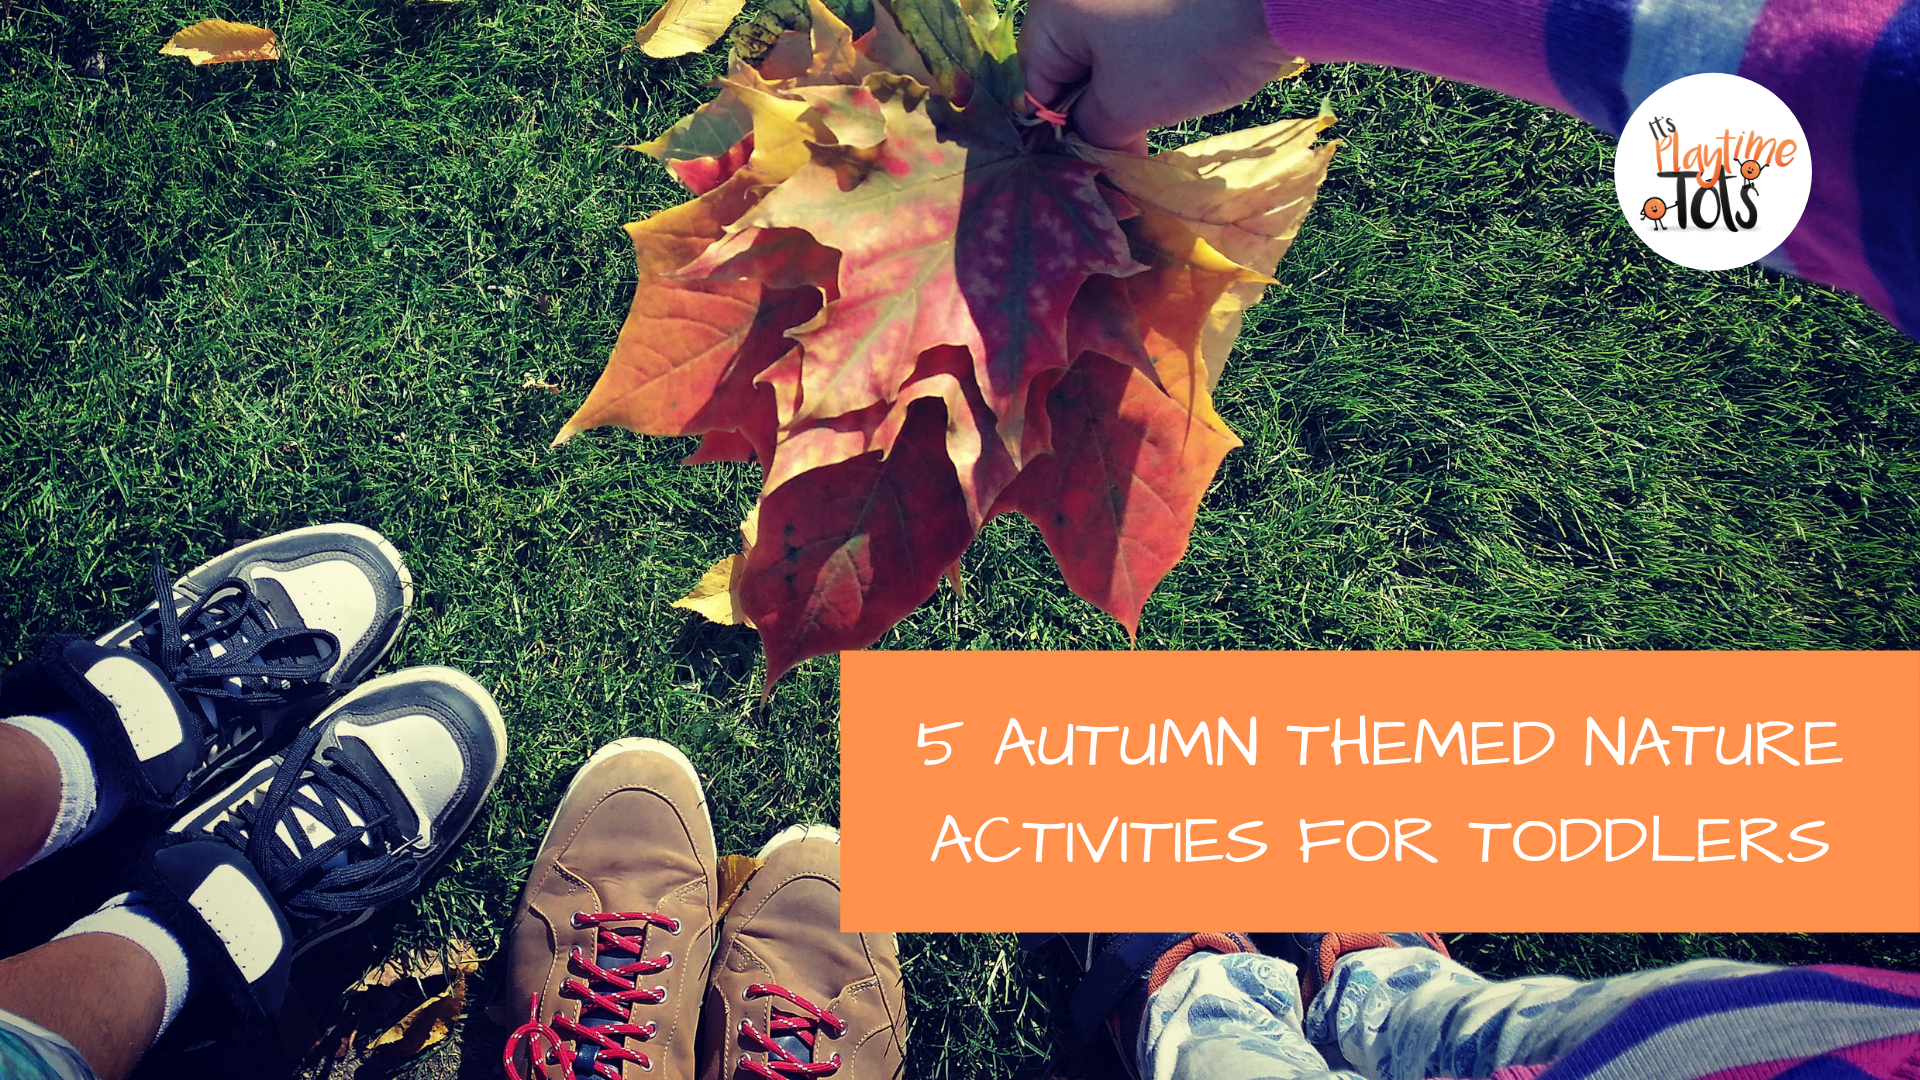 5 Autumn Themed Nature Activities for Toddlers